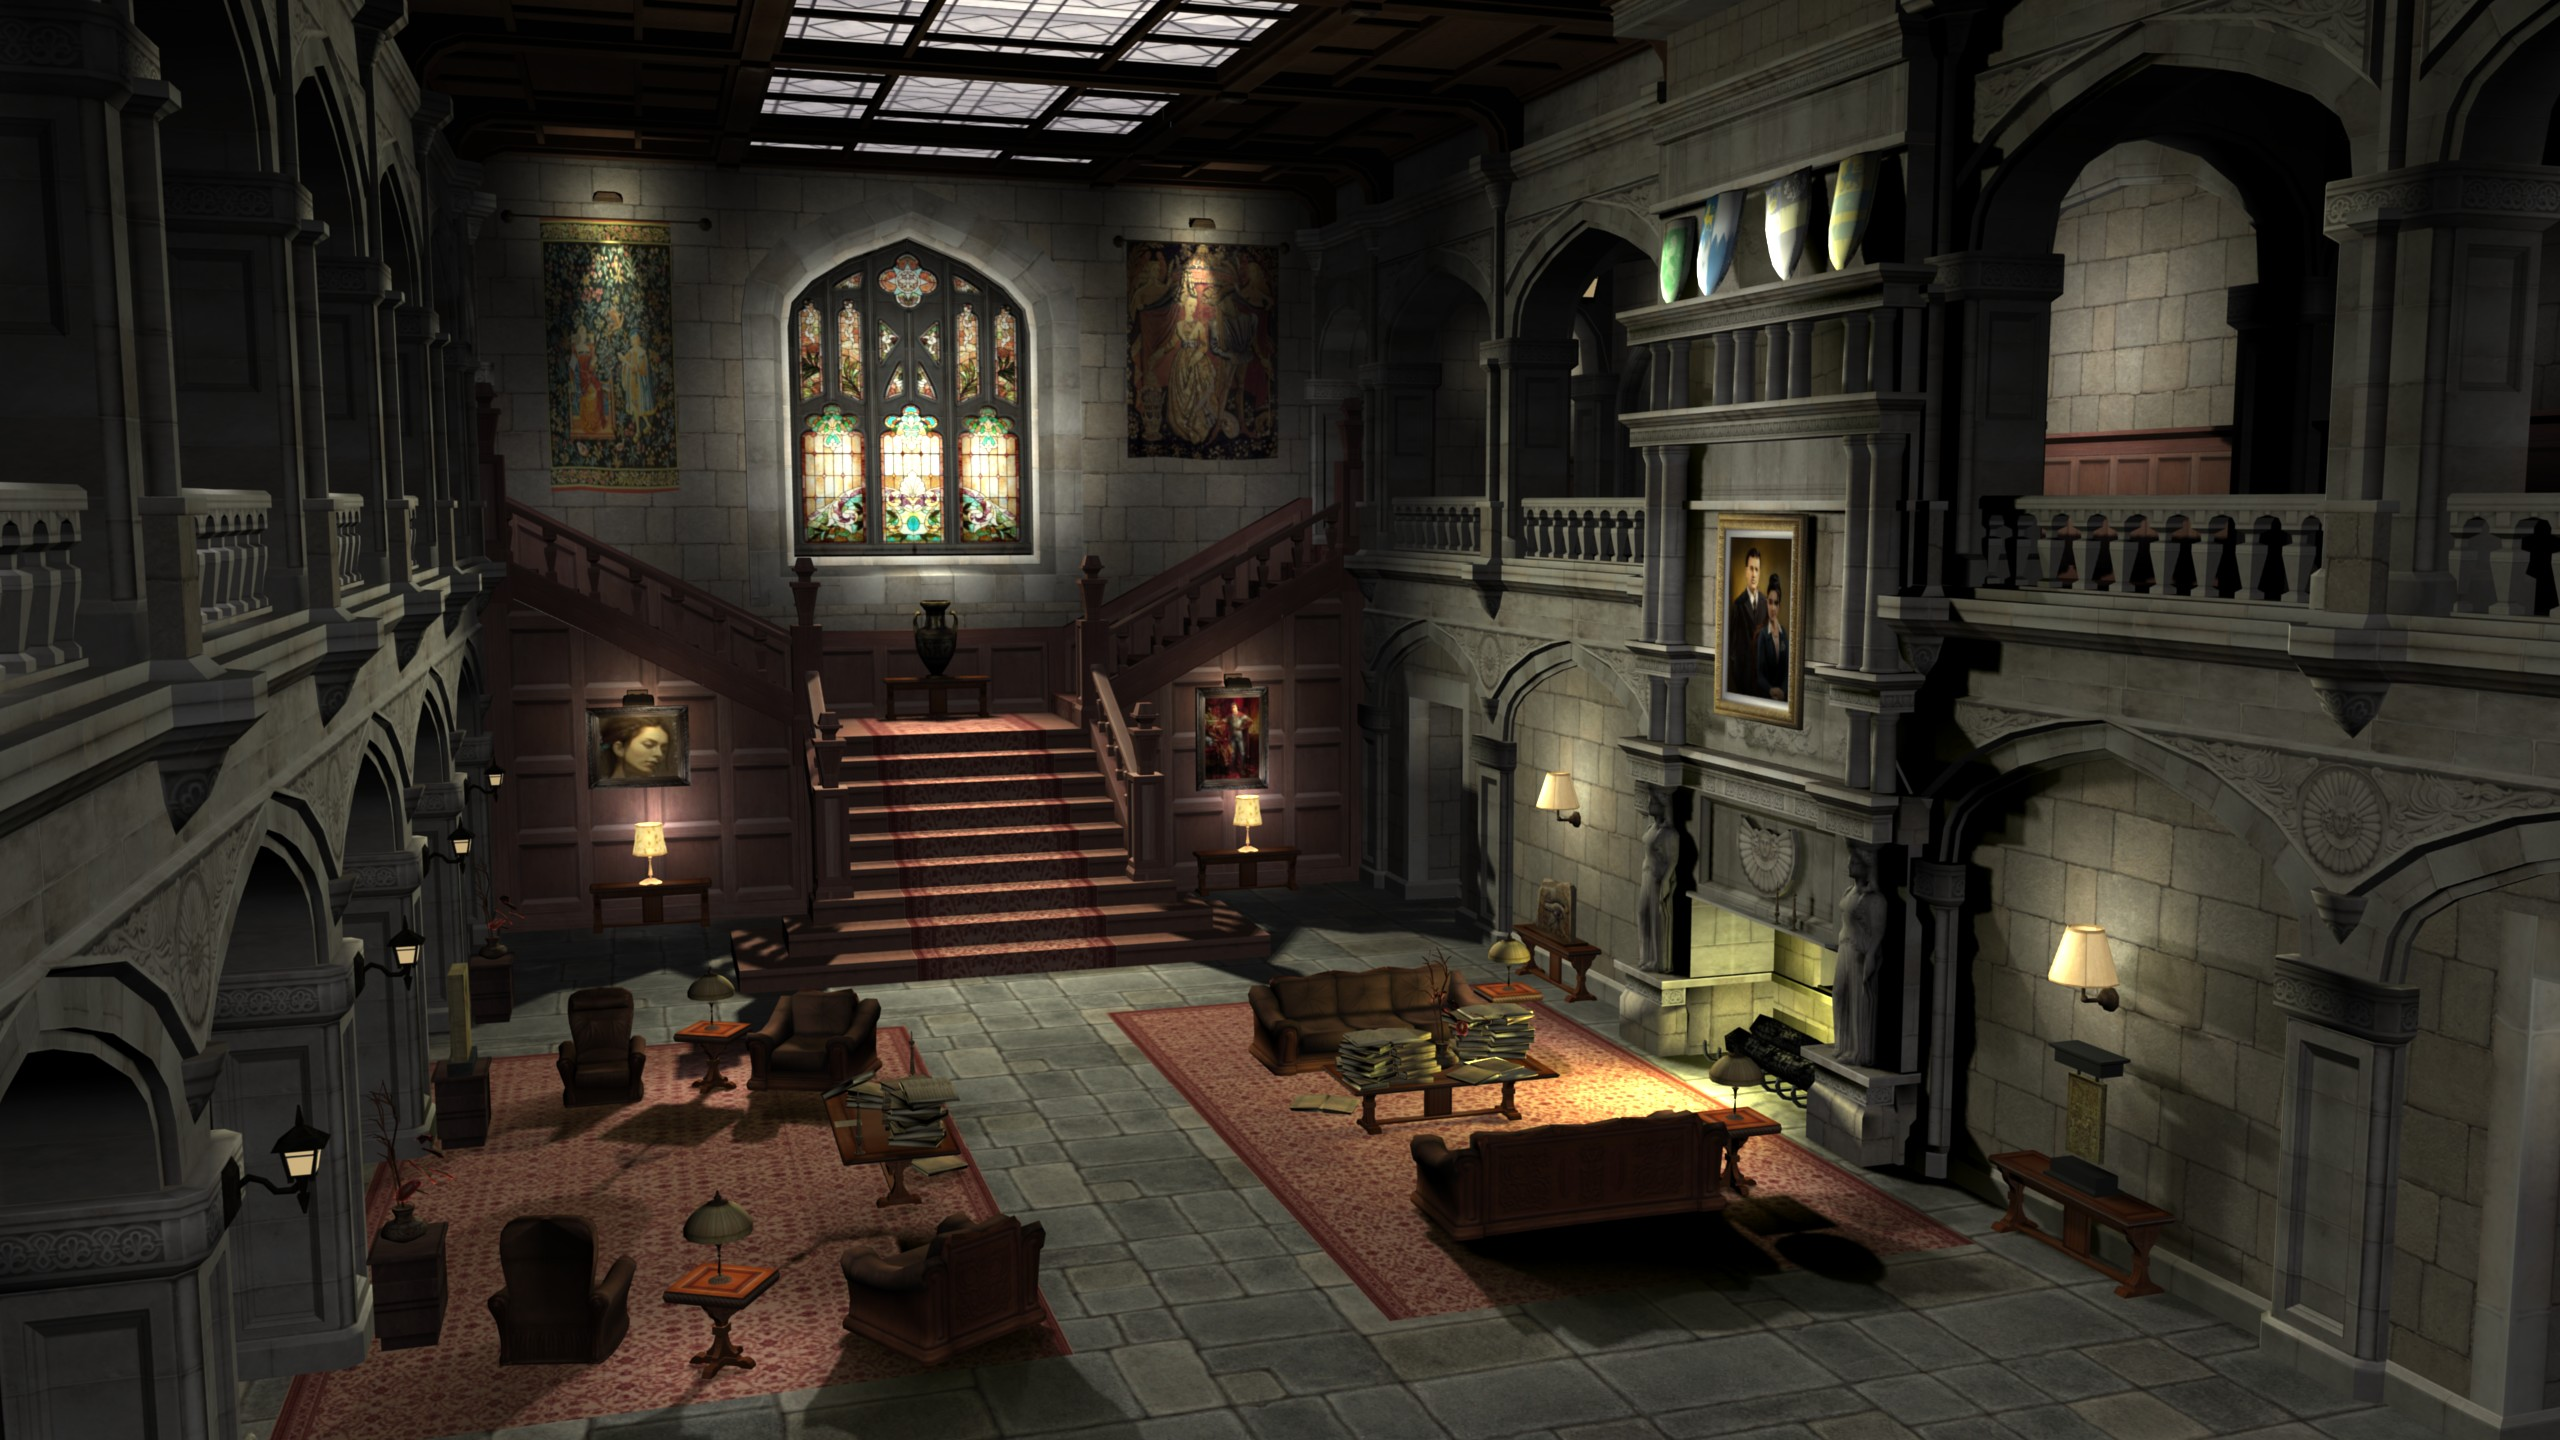 Croft_Manor_Hall_by_TRKO.jpg